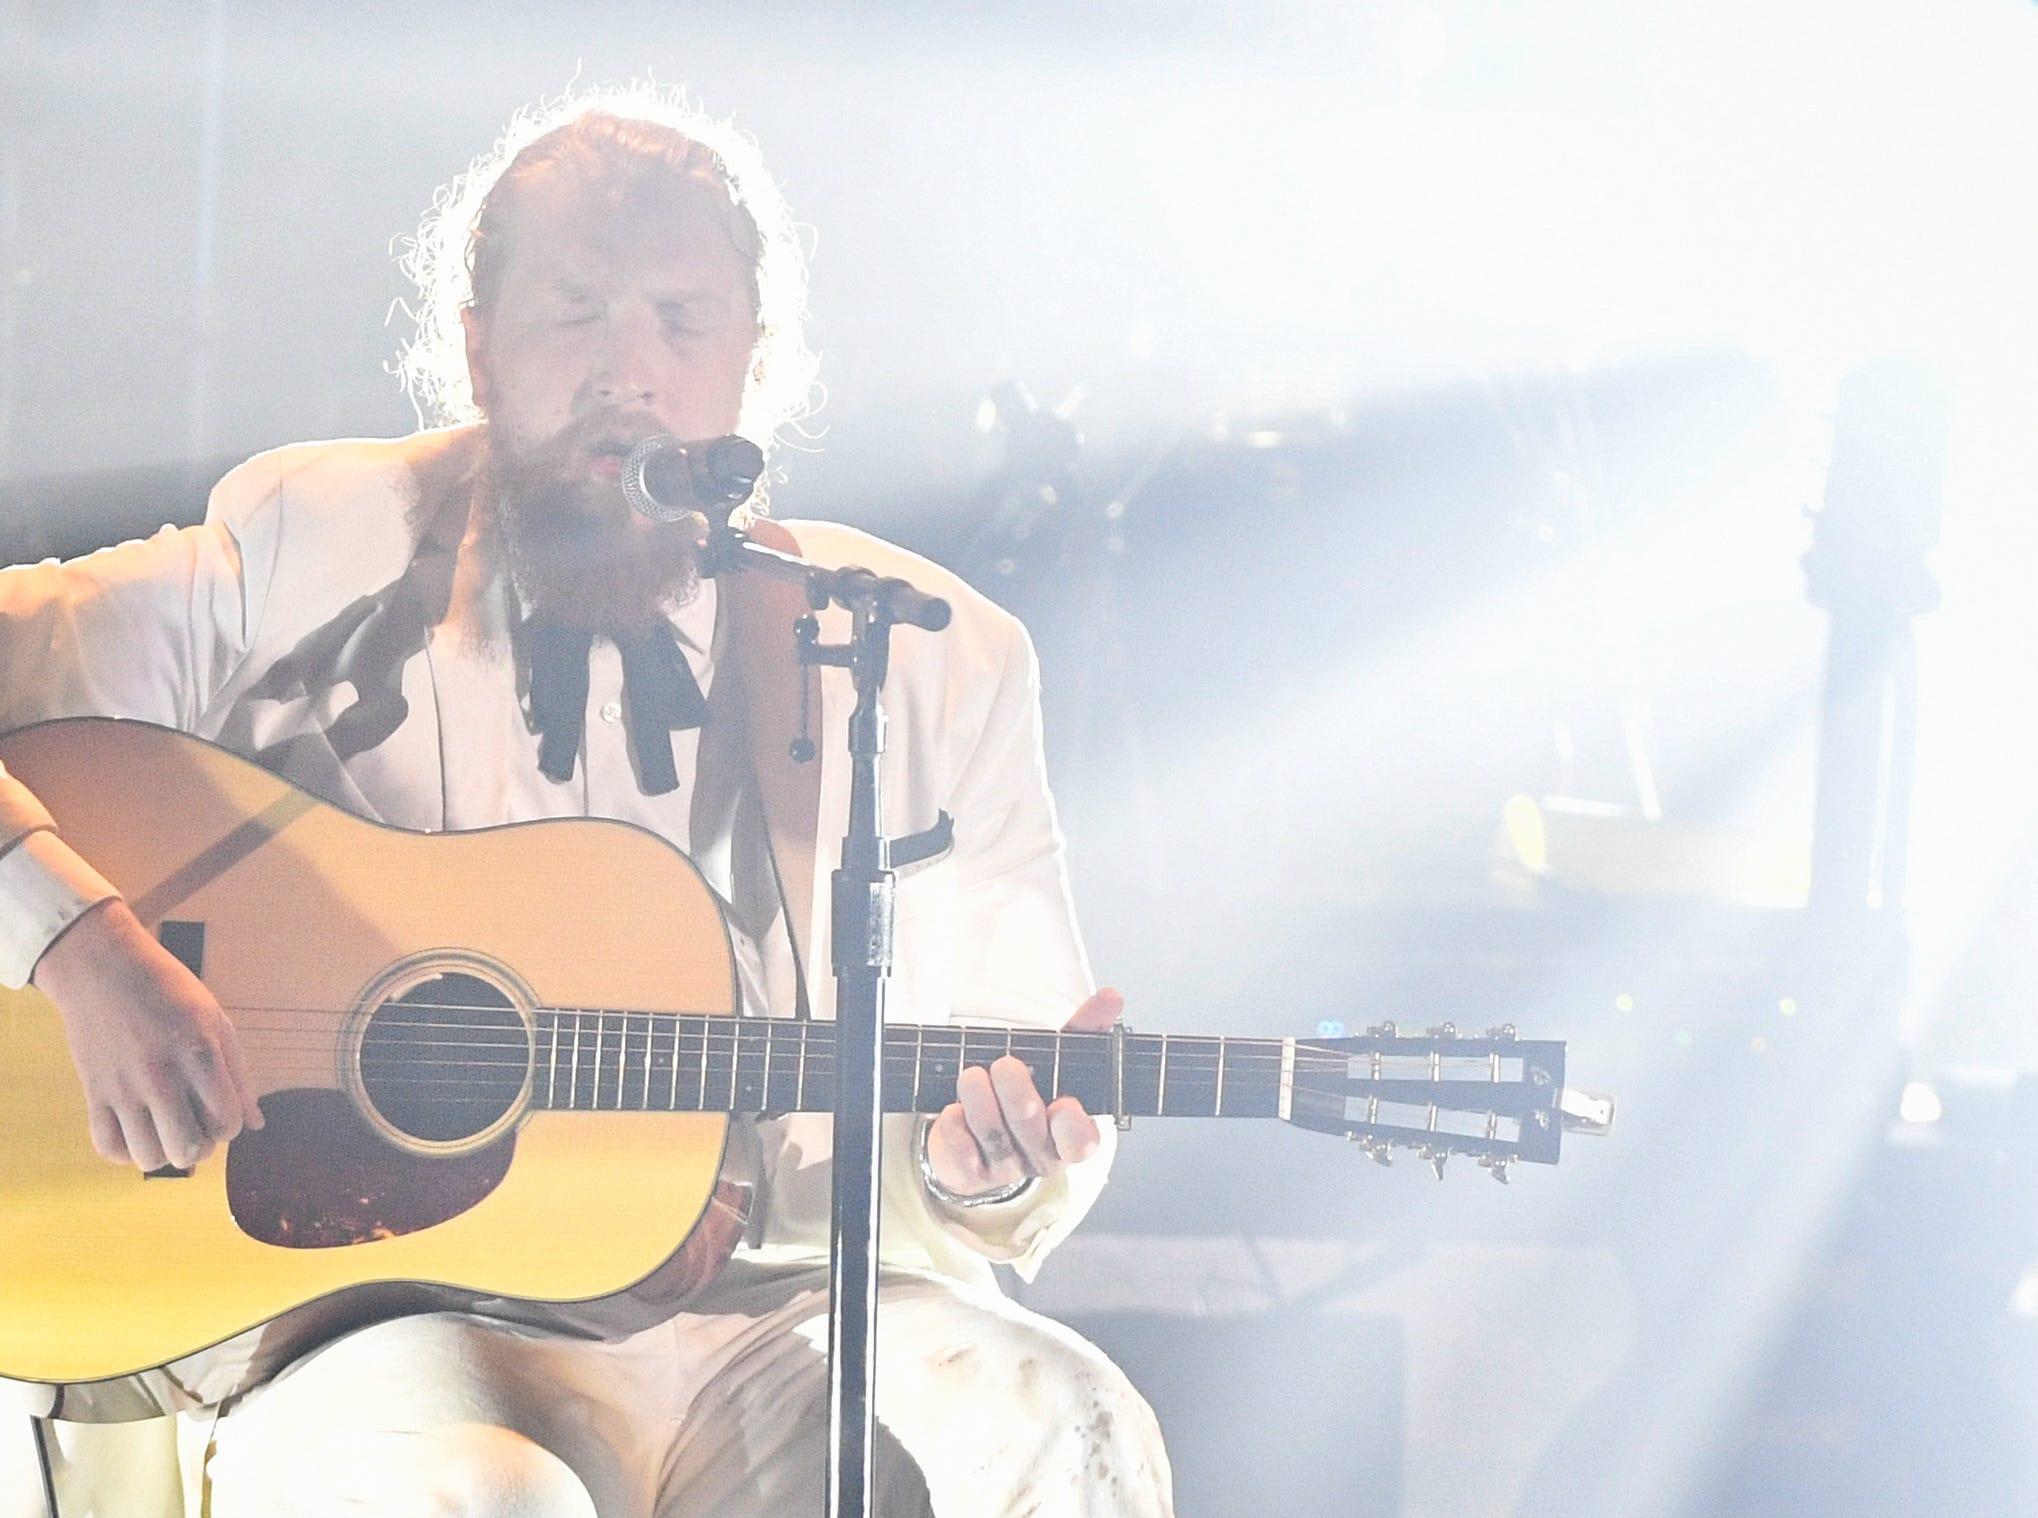 Tyler Childers performs during the 2018 Americana Honors and Awards show at the Ryman Auditorium in Nashville, Tenn., Wednesday, Sept. 12, 2018.